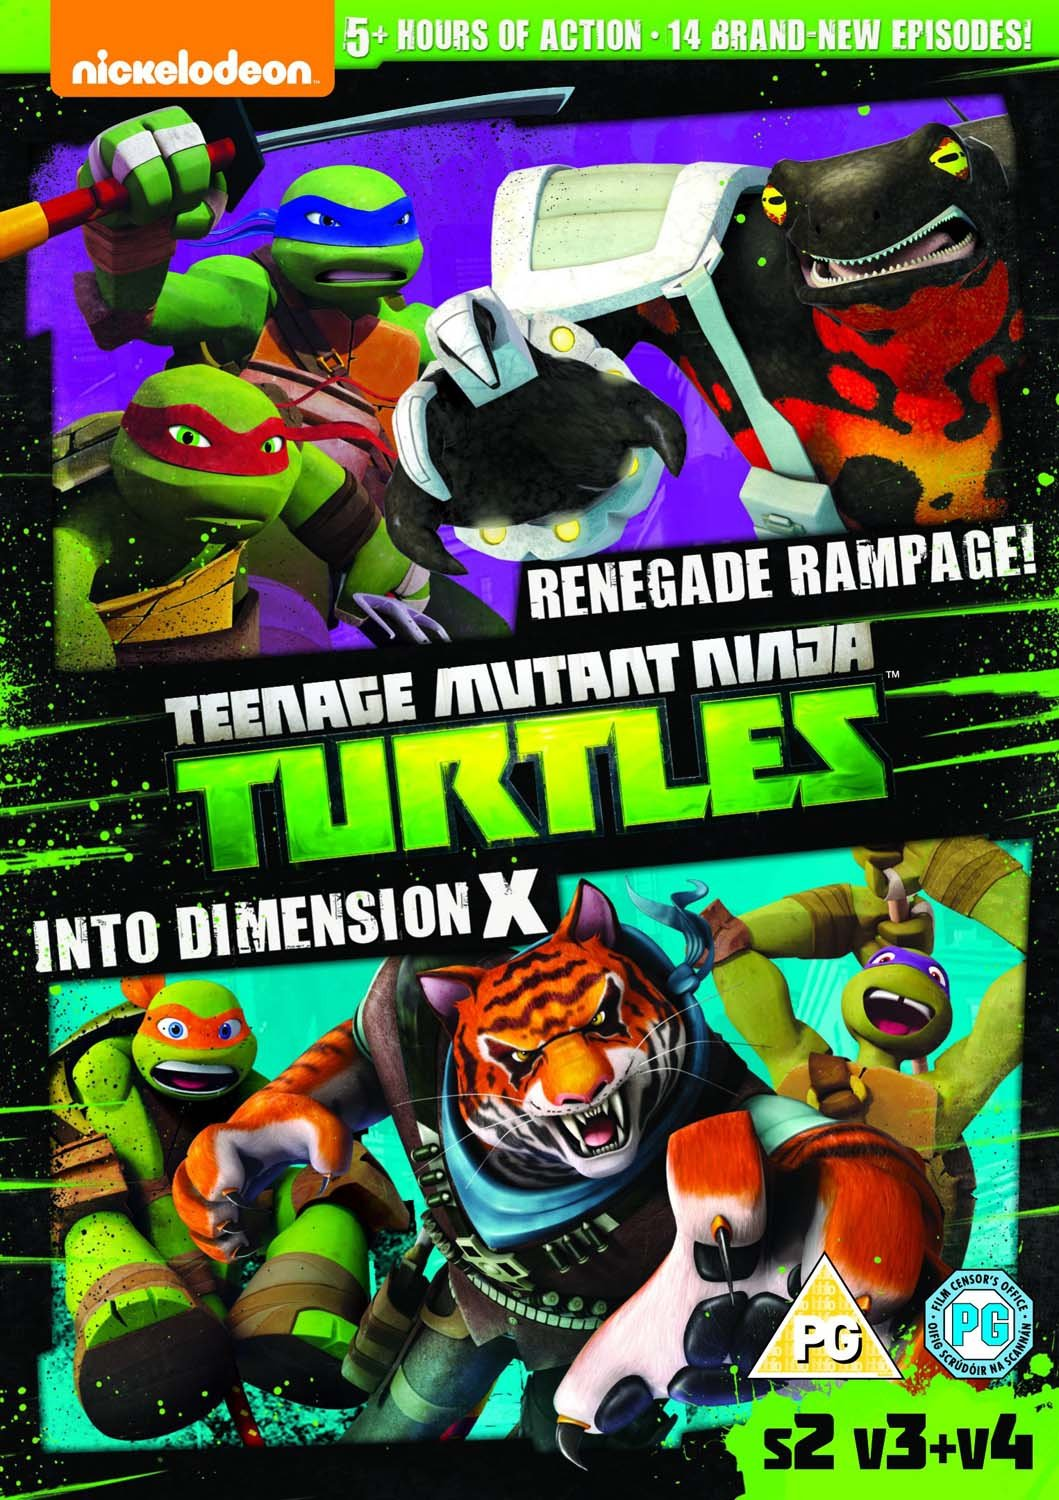 Teenage Mutant Ninja Turtles Season 2 Vol 3 + Vol 4 2 Dvd ...